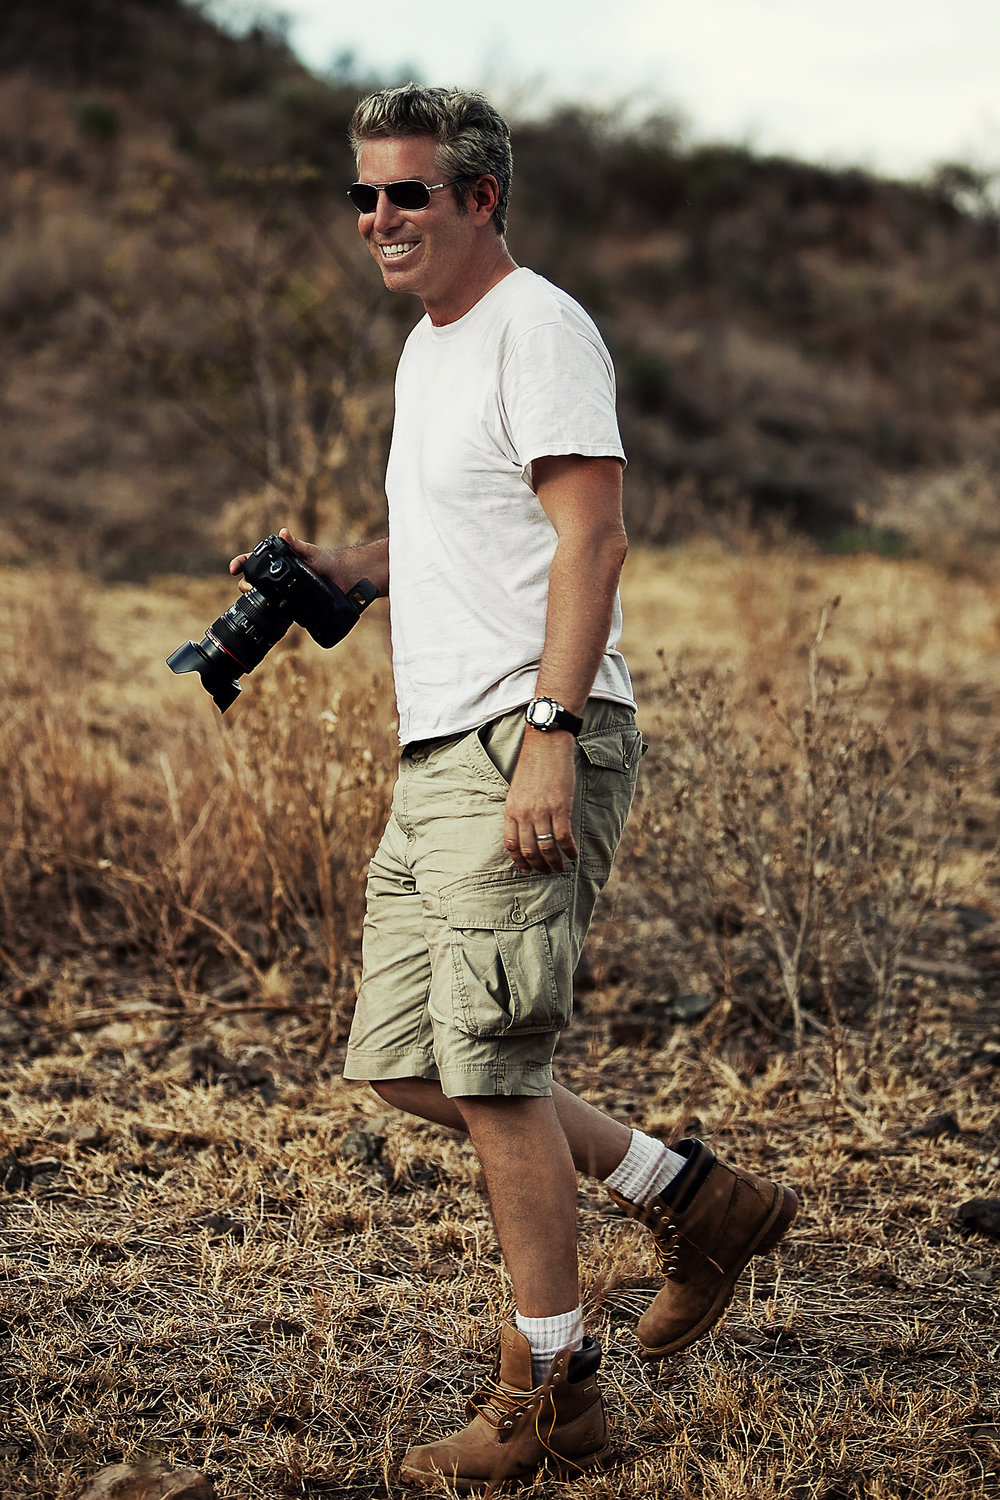 Kevin in Ethiopia on a charity shoot.